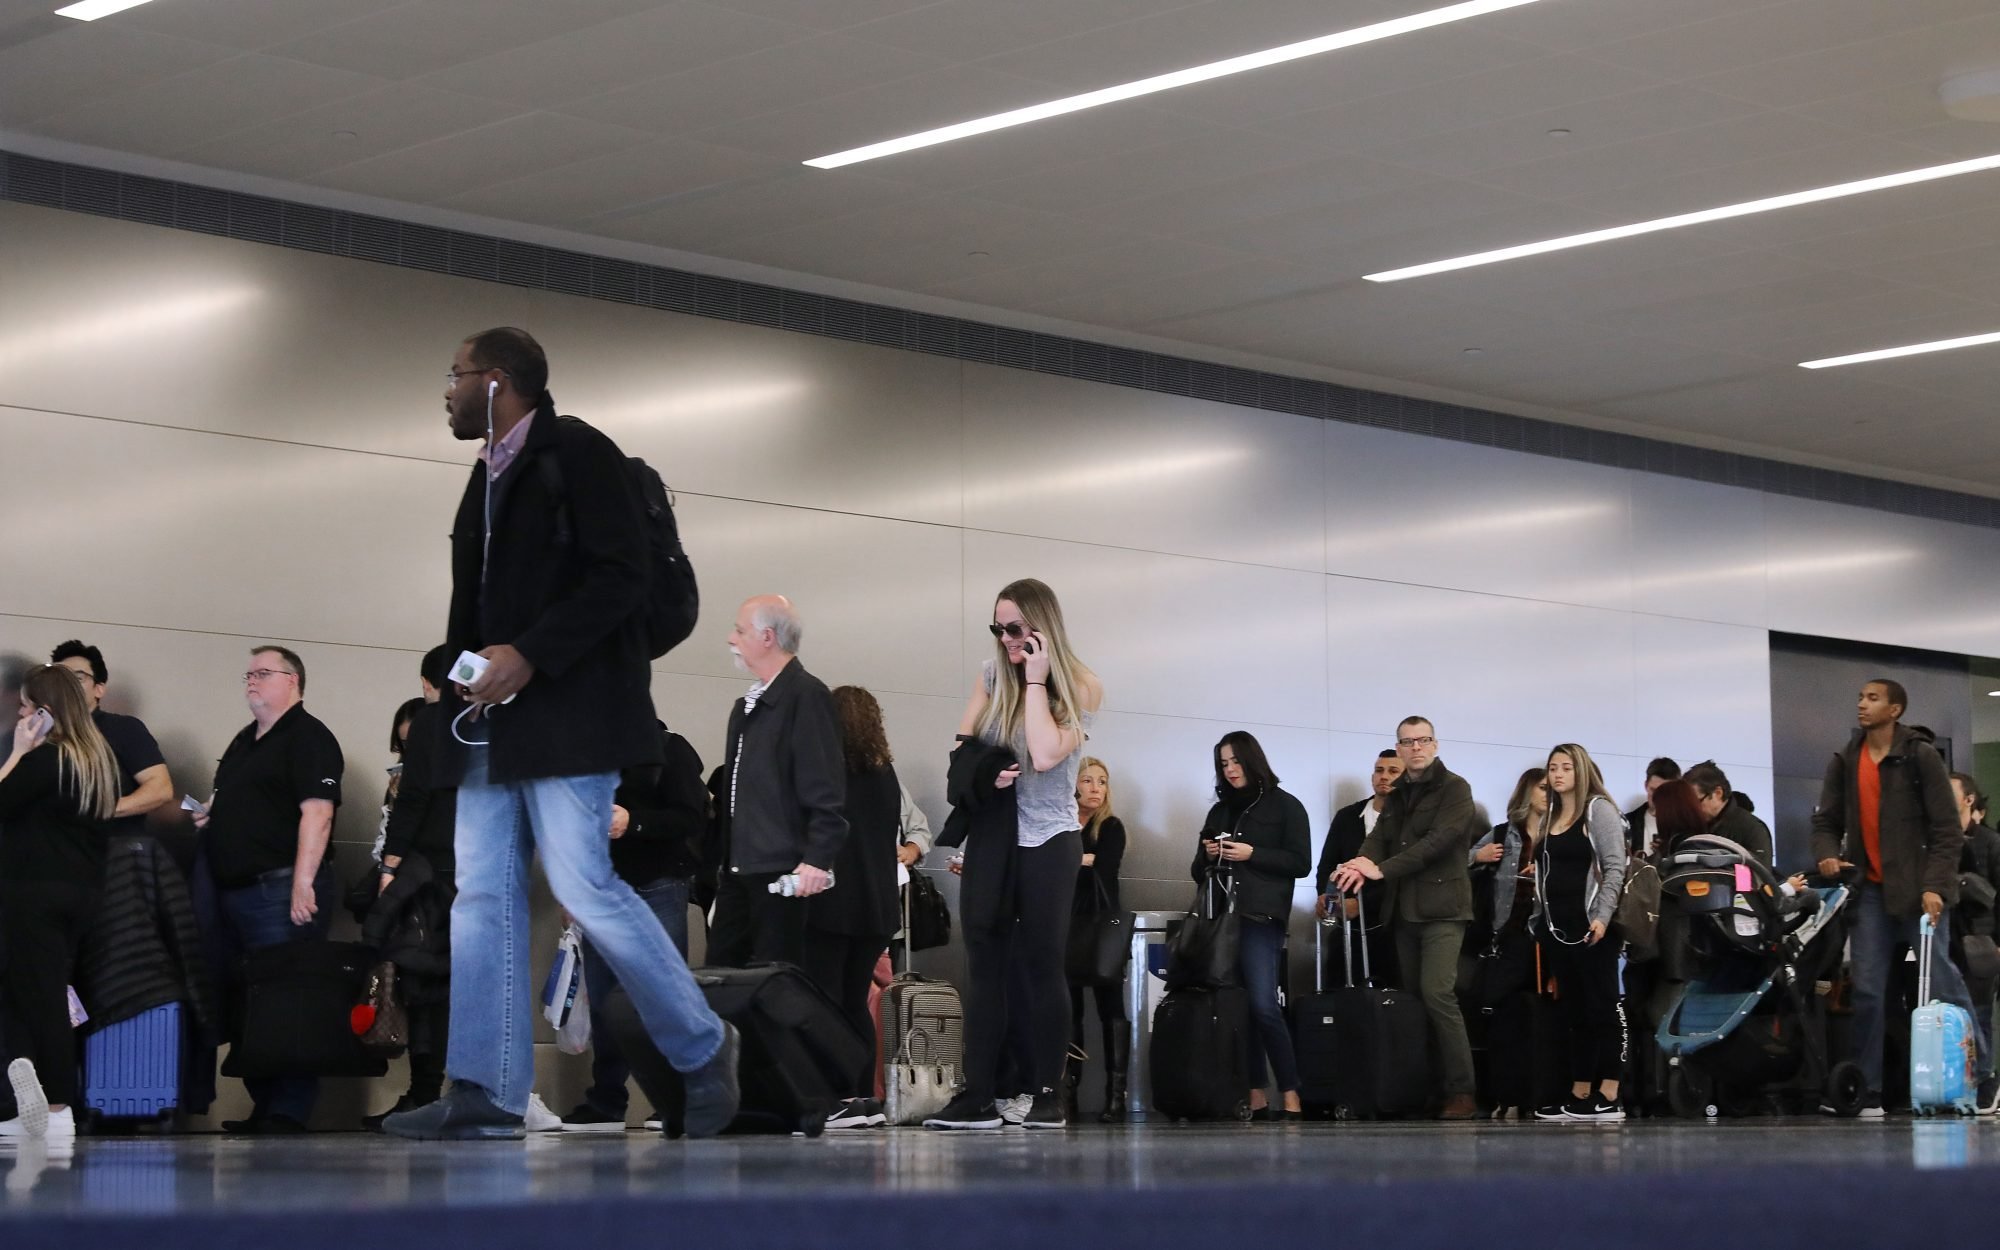 Holiday Travel Day Before Thanksgiving Predicted To Be Heavier Than Years Past